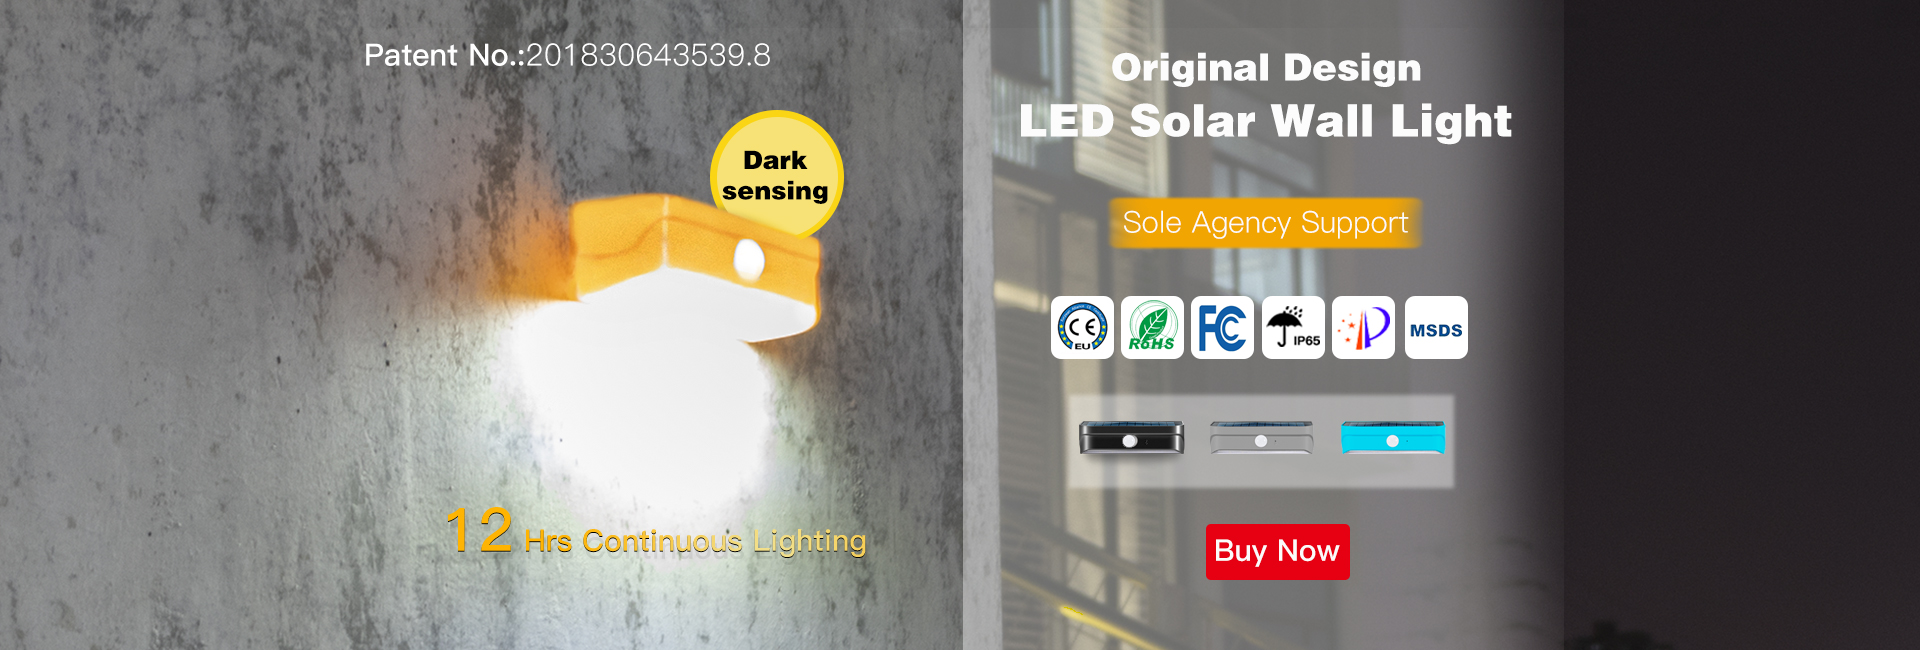 LED Solar Wall Lamp,LED Solar Wall Light,LED Sensor Wall Light,Smart LED Solar,Inductive Wall Light,led solar outdoor light,motion sensor solar light,solar emergency light,solar garden wall light,solar led door light